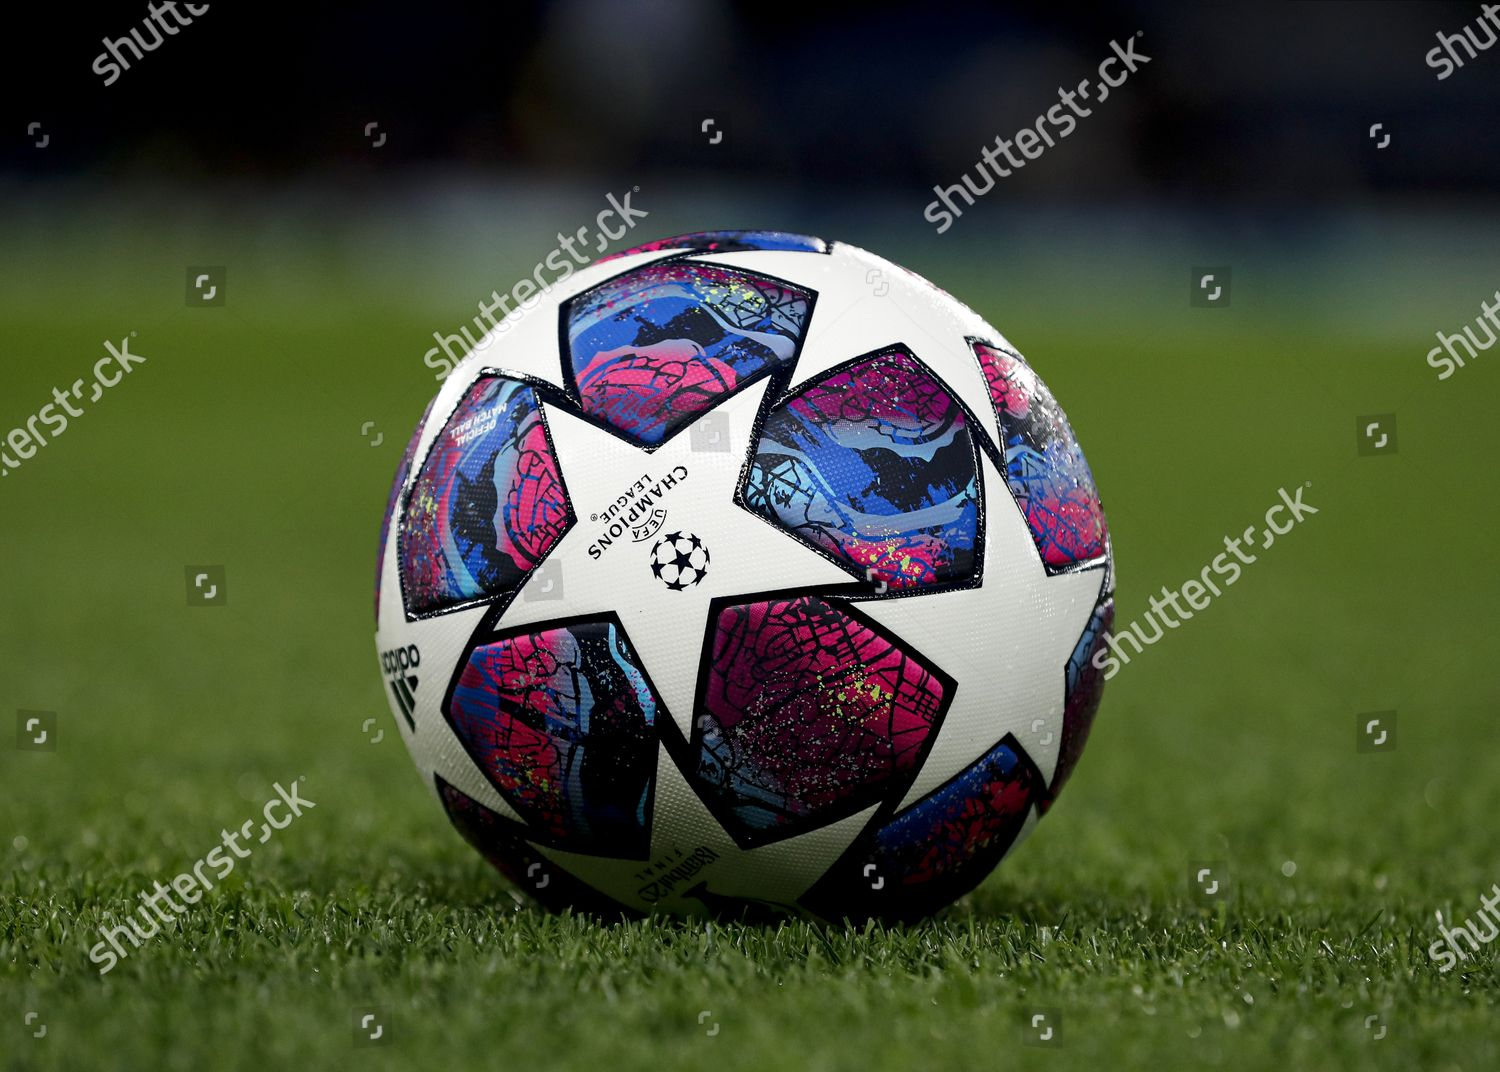 official champions league ball on pitch editorial stock photo stock image shutterstock 2